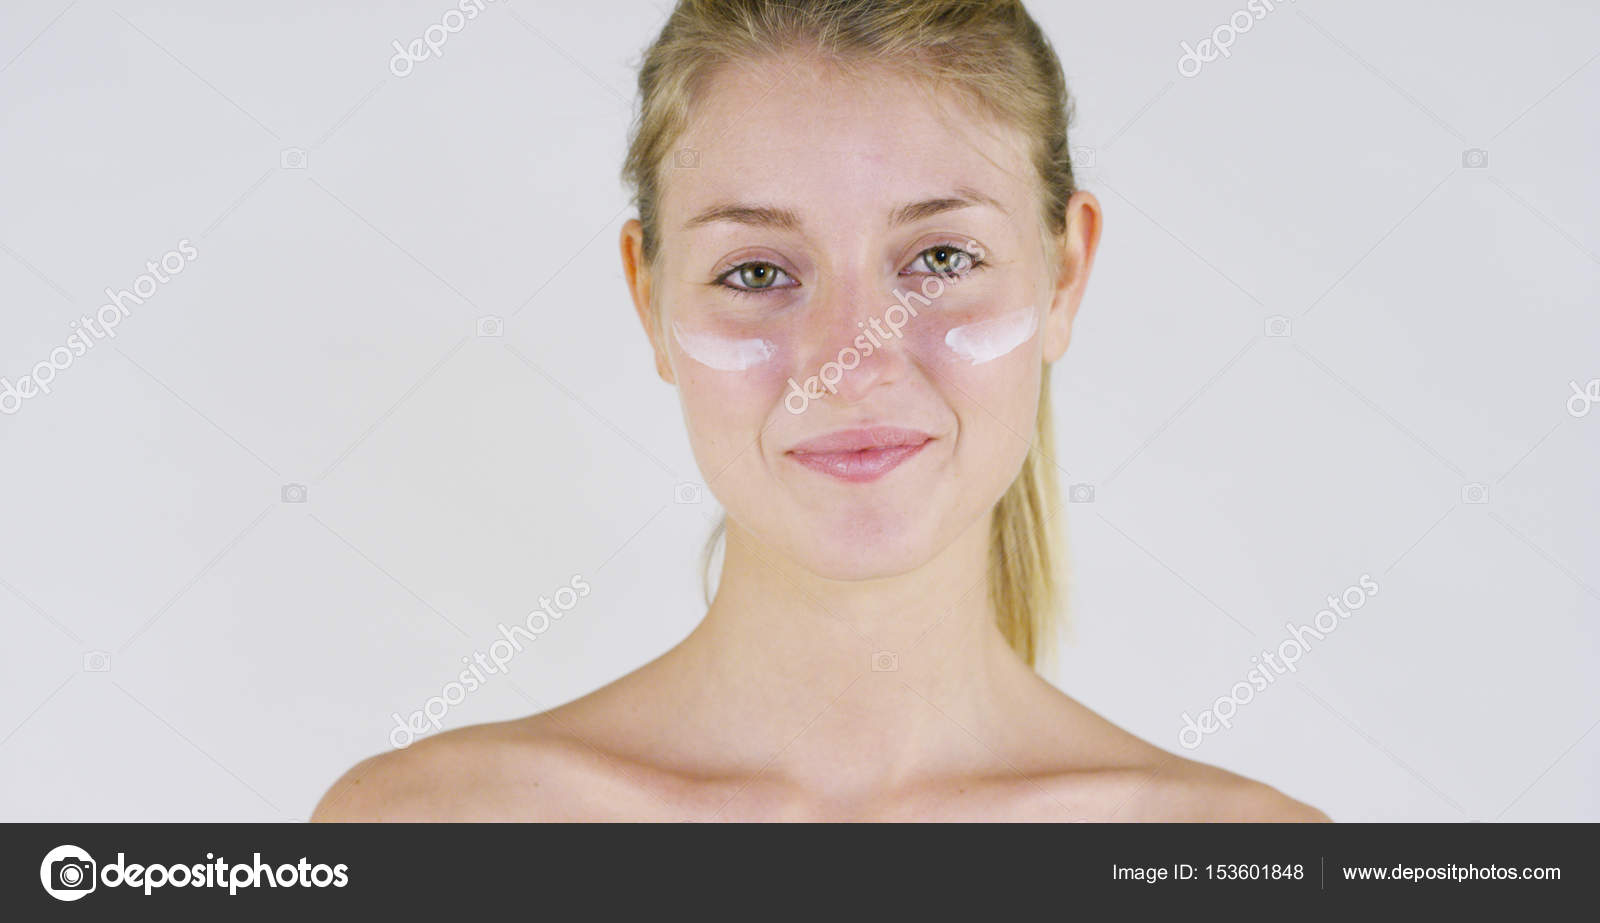 Portrait of a beautiful young girl smiling and looking at the camera looking at the camera without makeup smearing face of creamon a white backgroundnceptnatural beautyyouthskin care always younglove yourself solutioingenieria Image collections